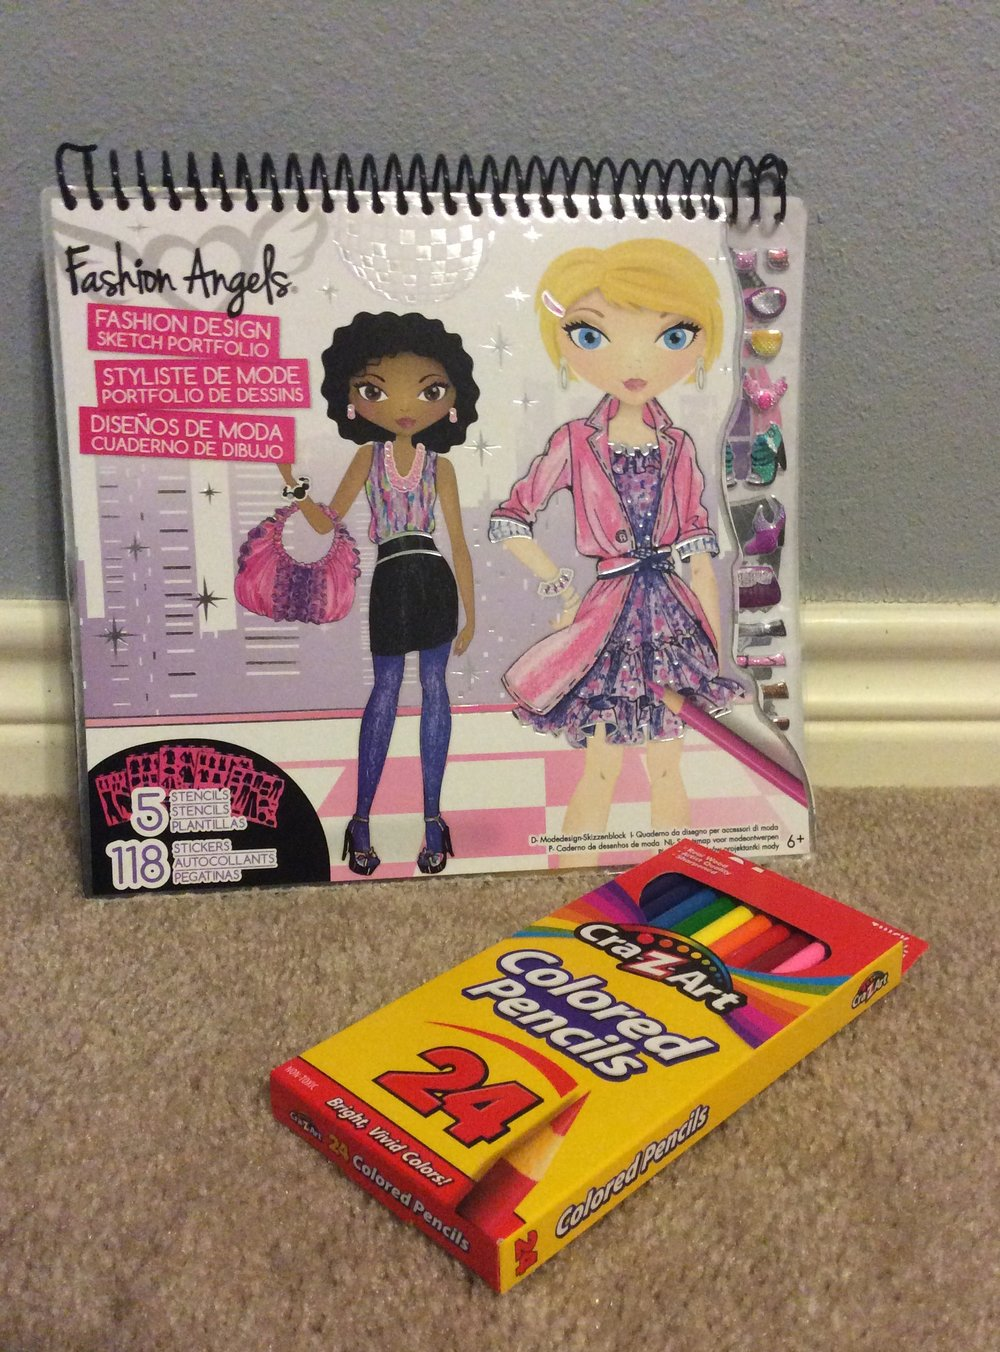 Fashion Pad (Target $9.99) & Pencils (Big Lots $2.25)